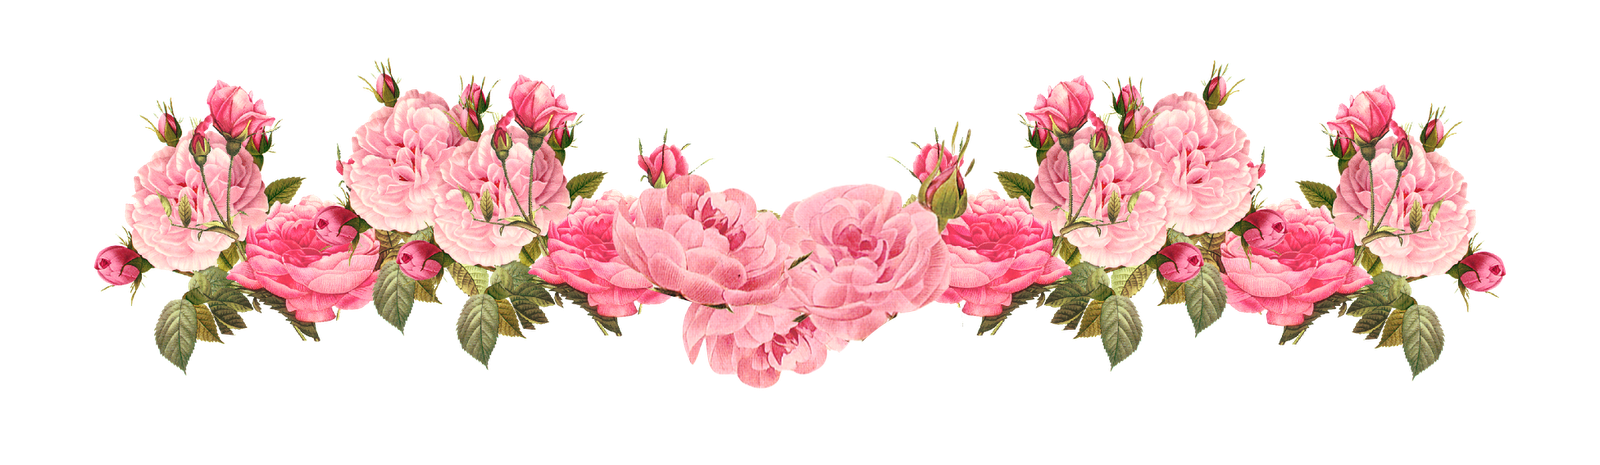 Image - Free-vintage-rose-borders-vintage -roses-scrapbooking-embellishment-uUPOyg-clipart.png | Animal Jam Clans  Wiki | FANDOM powered by Wikia - PNG Vintage